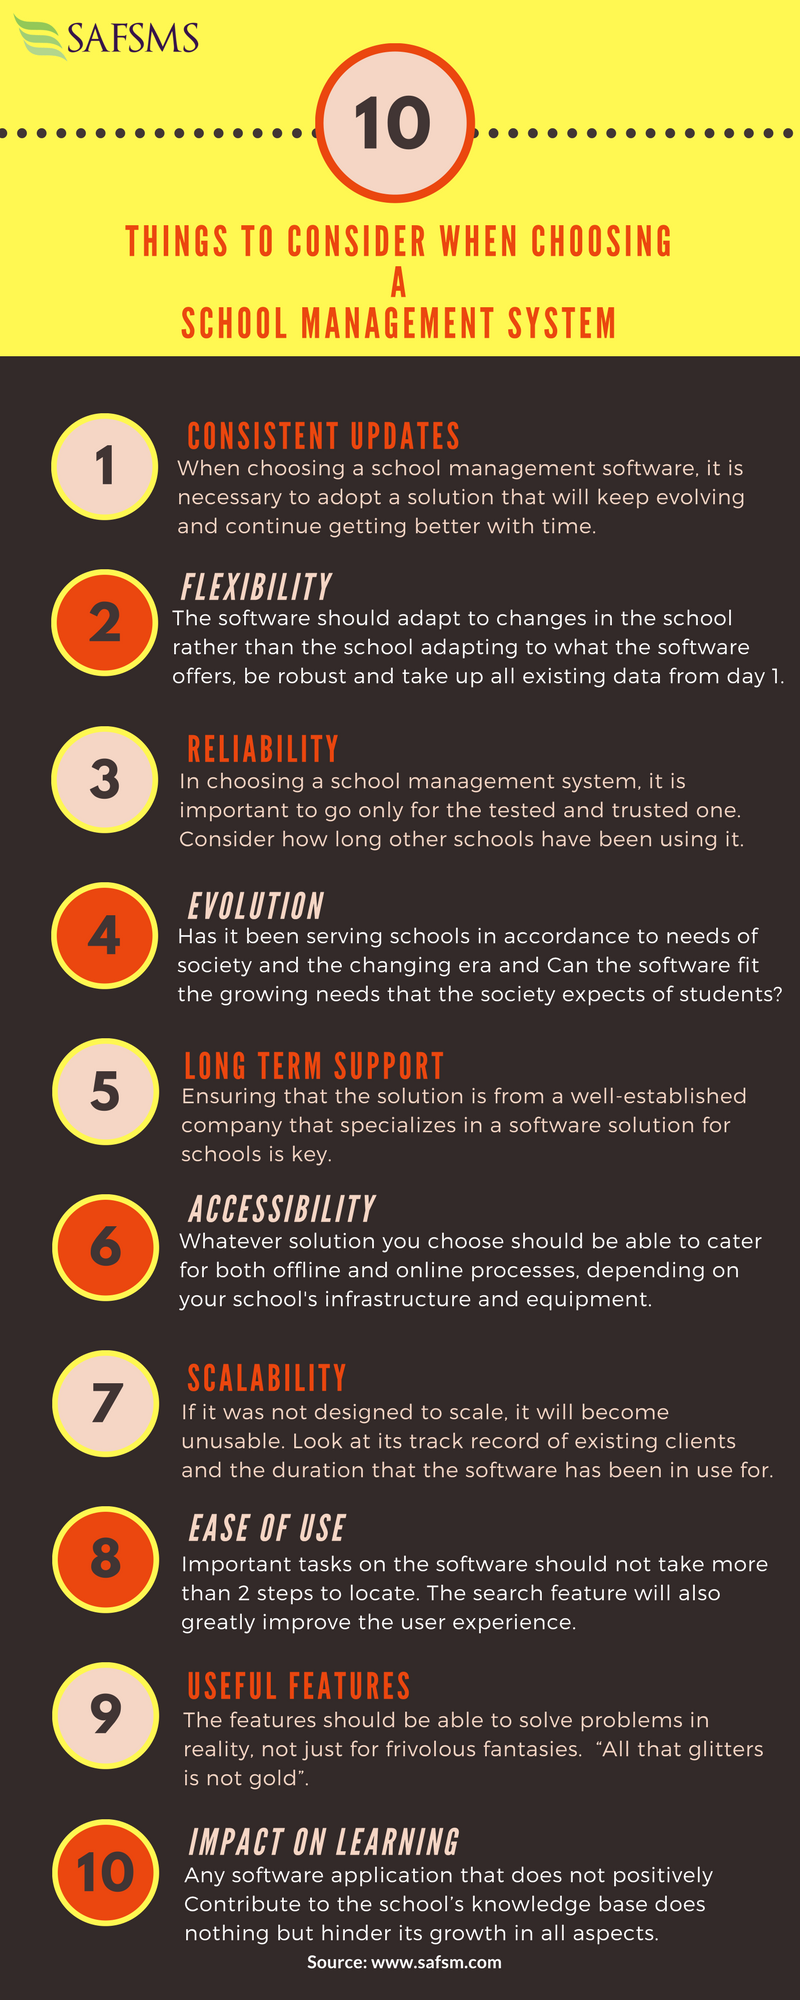 things-to-consider-choosing-school-management-system-infographic-plaza